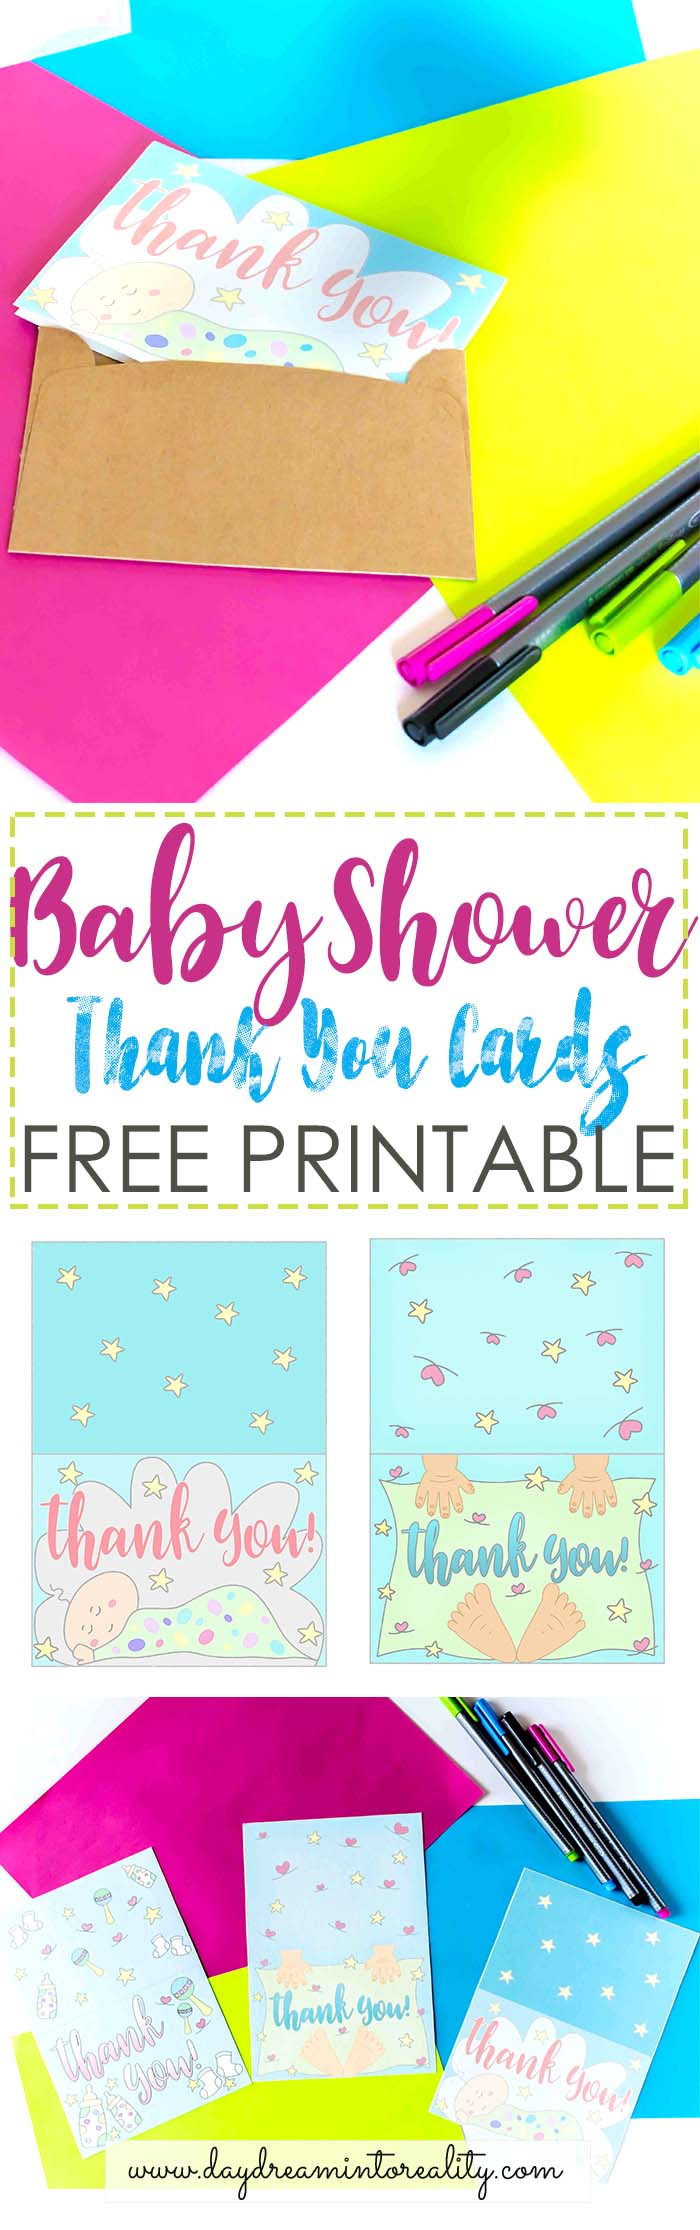 Baby Shower Thank You Cards Free Printable ~ Daydream Into Reality - Free Printable Baby Shower Thank You Cards